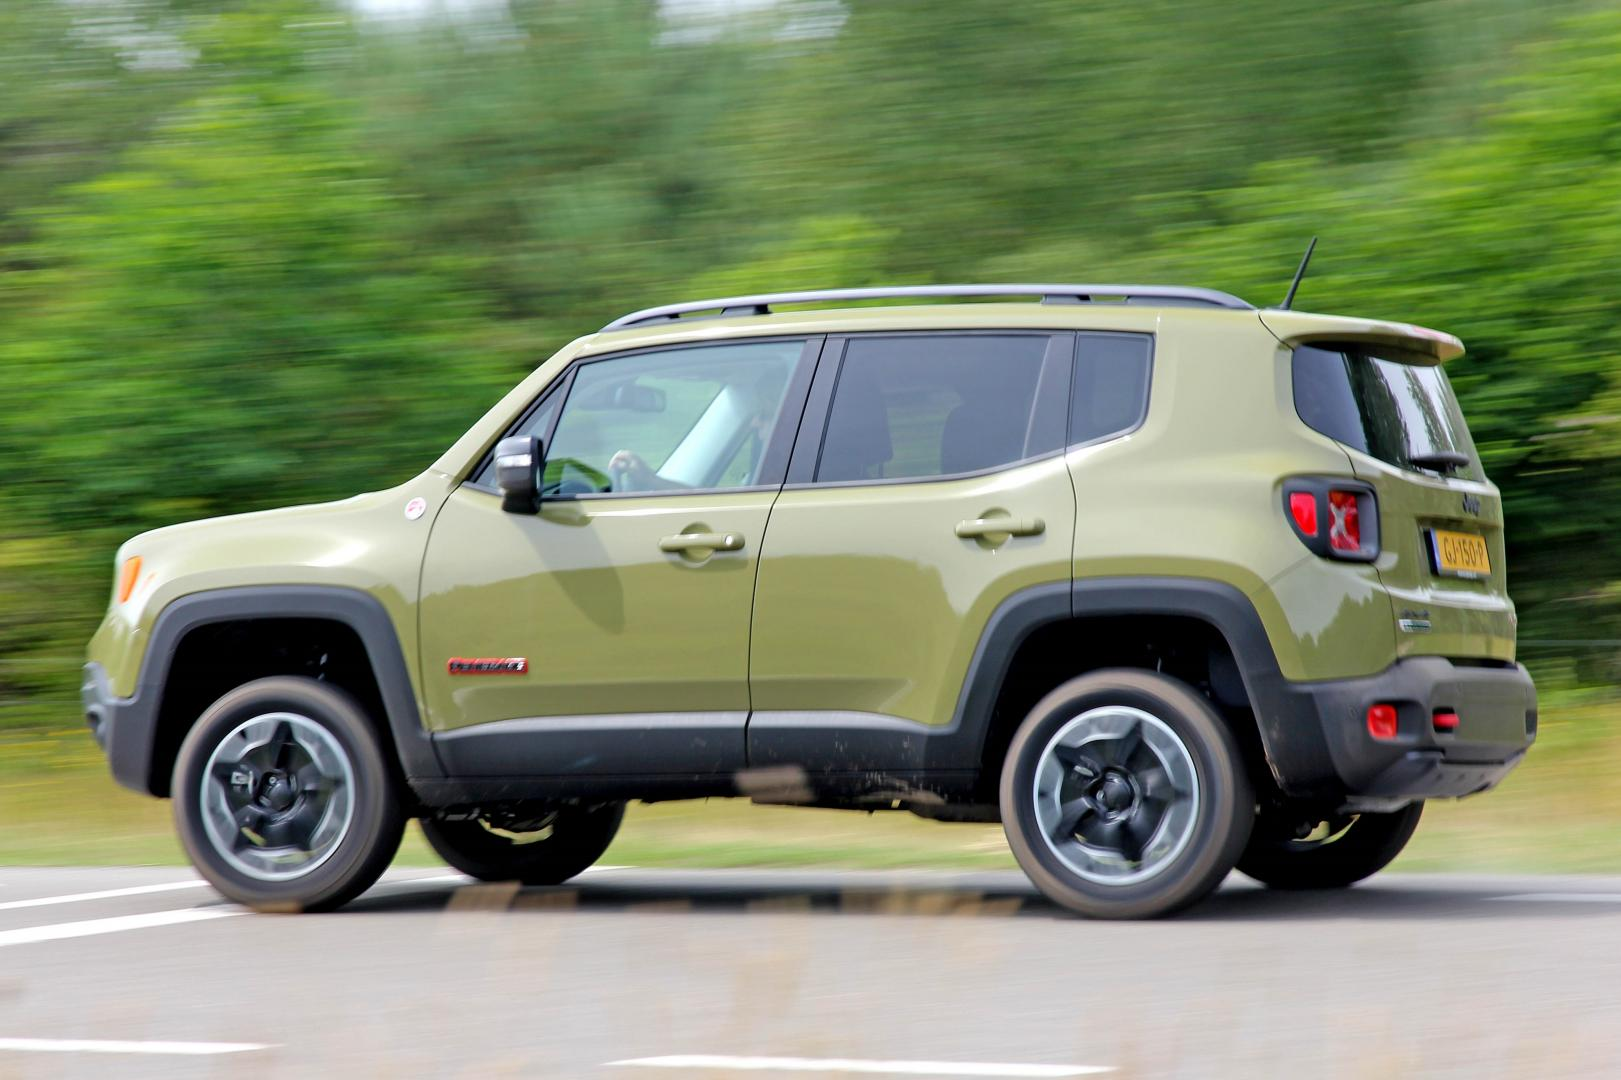 jeep renegade 2 0 4wd trailhawk test en specificaties topgear. Black Bedroom Furniture Sets. Home Design Ideas